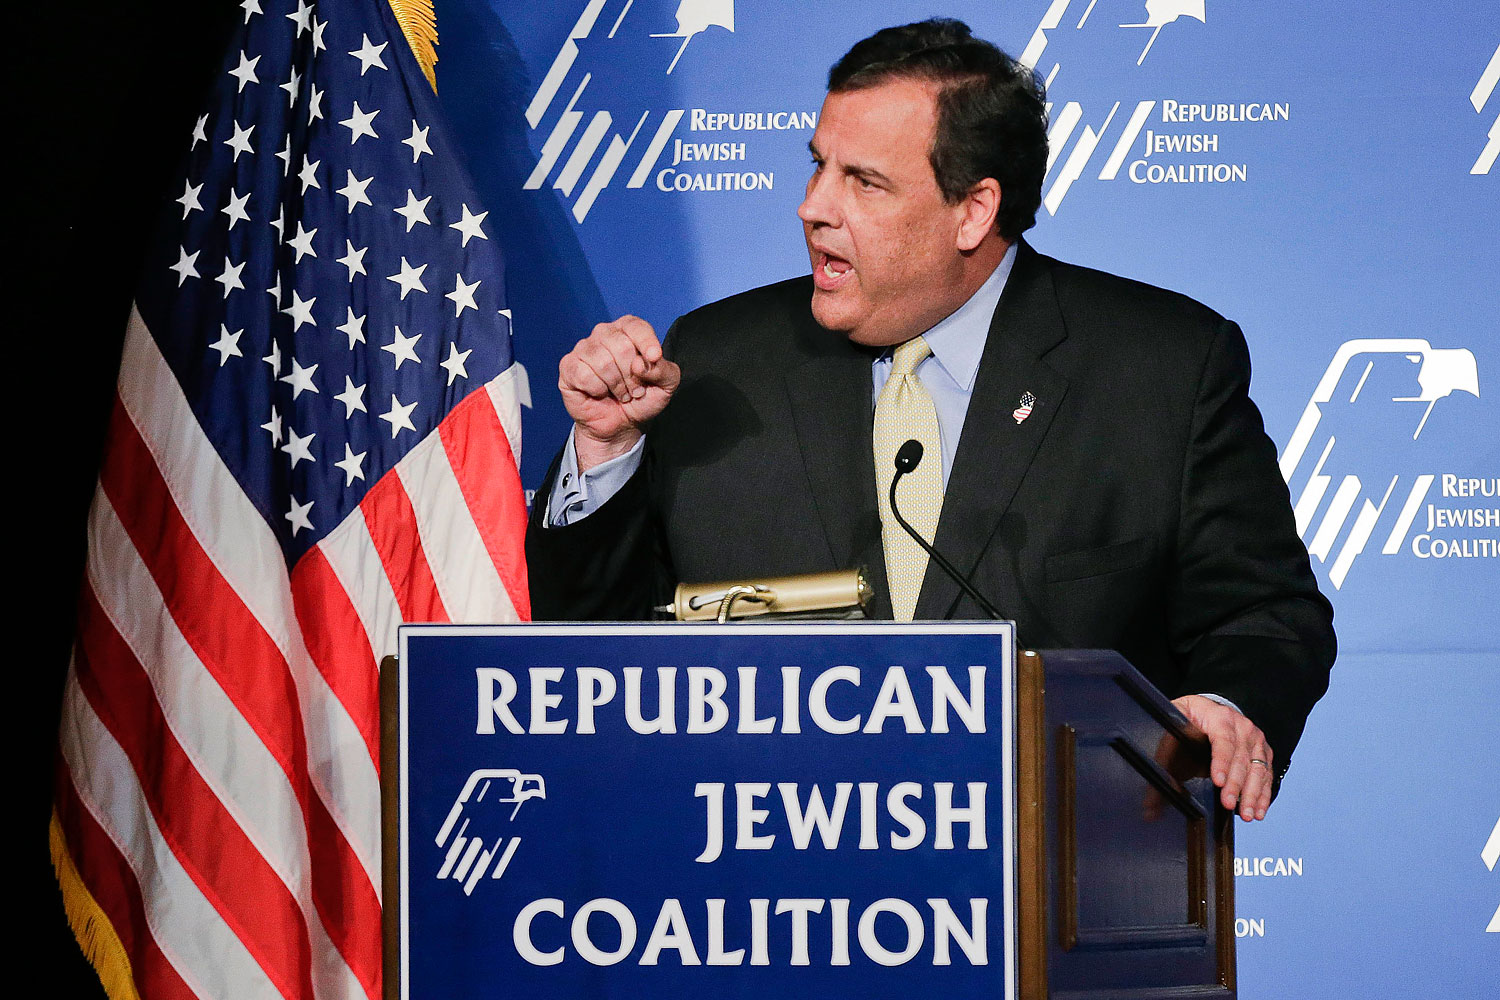 New Jersey Governor Chris Christie speaks at the Republican Jewish Coalition on March 29, 2014, in Las Vegas